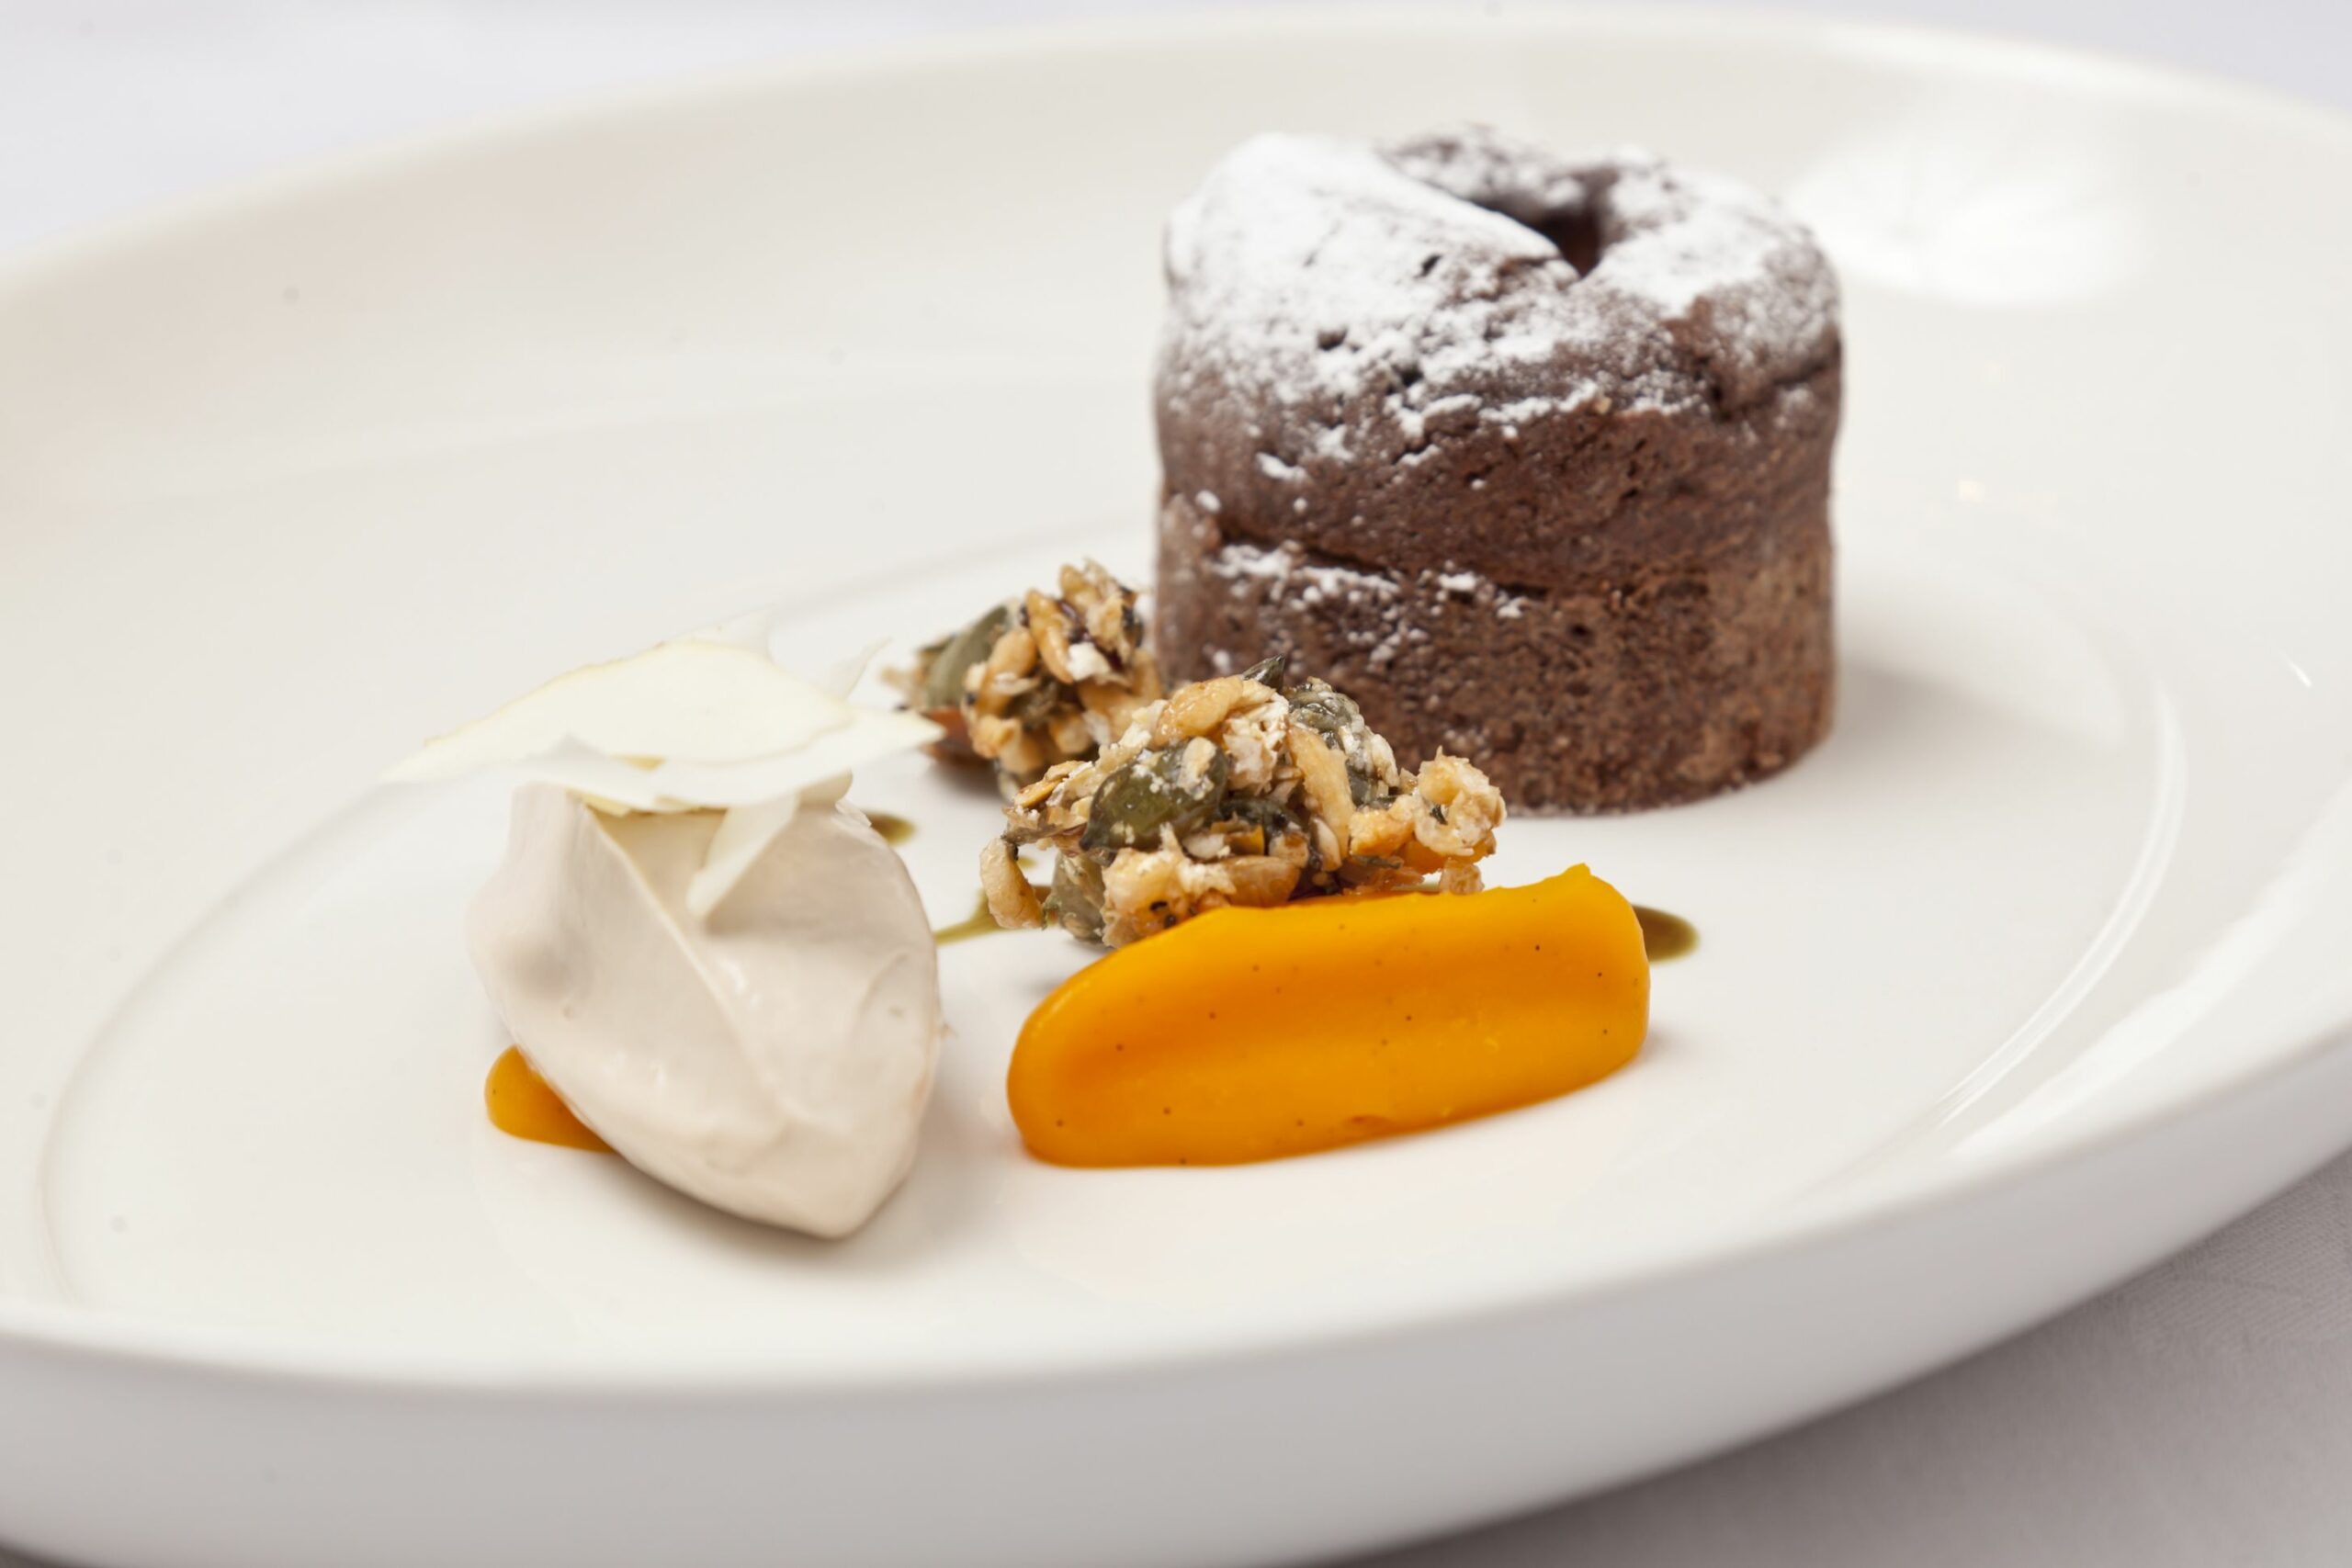 Chocolate Fondant Recipes - Great British Chefs - Recipe Chocolate Fondant